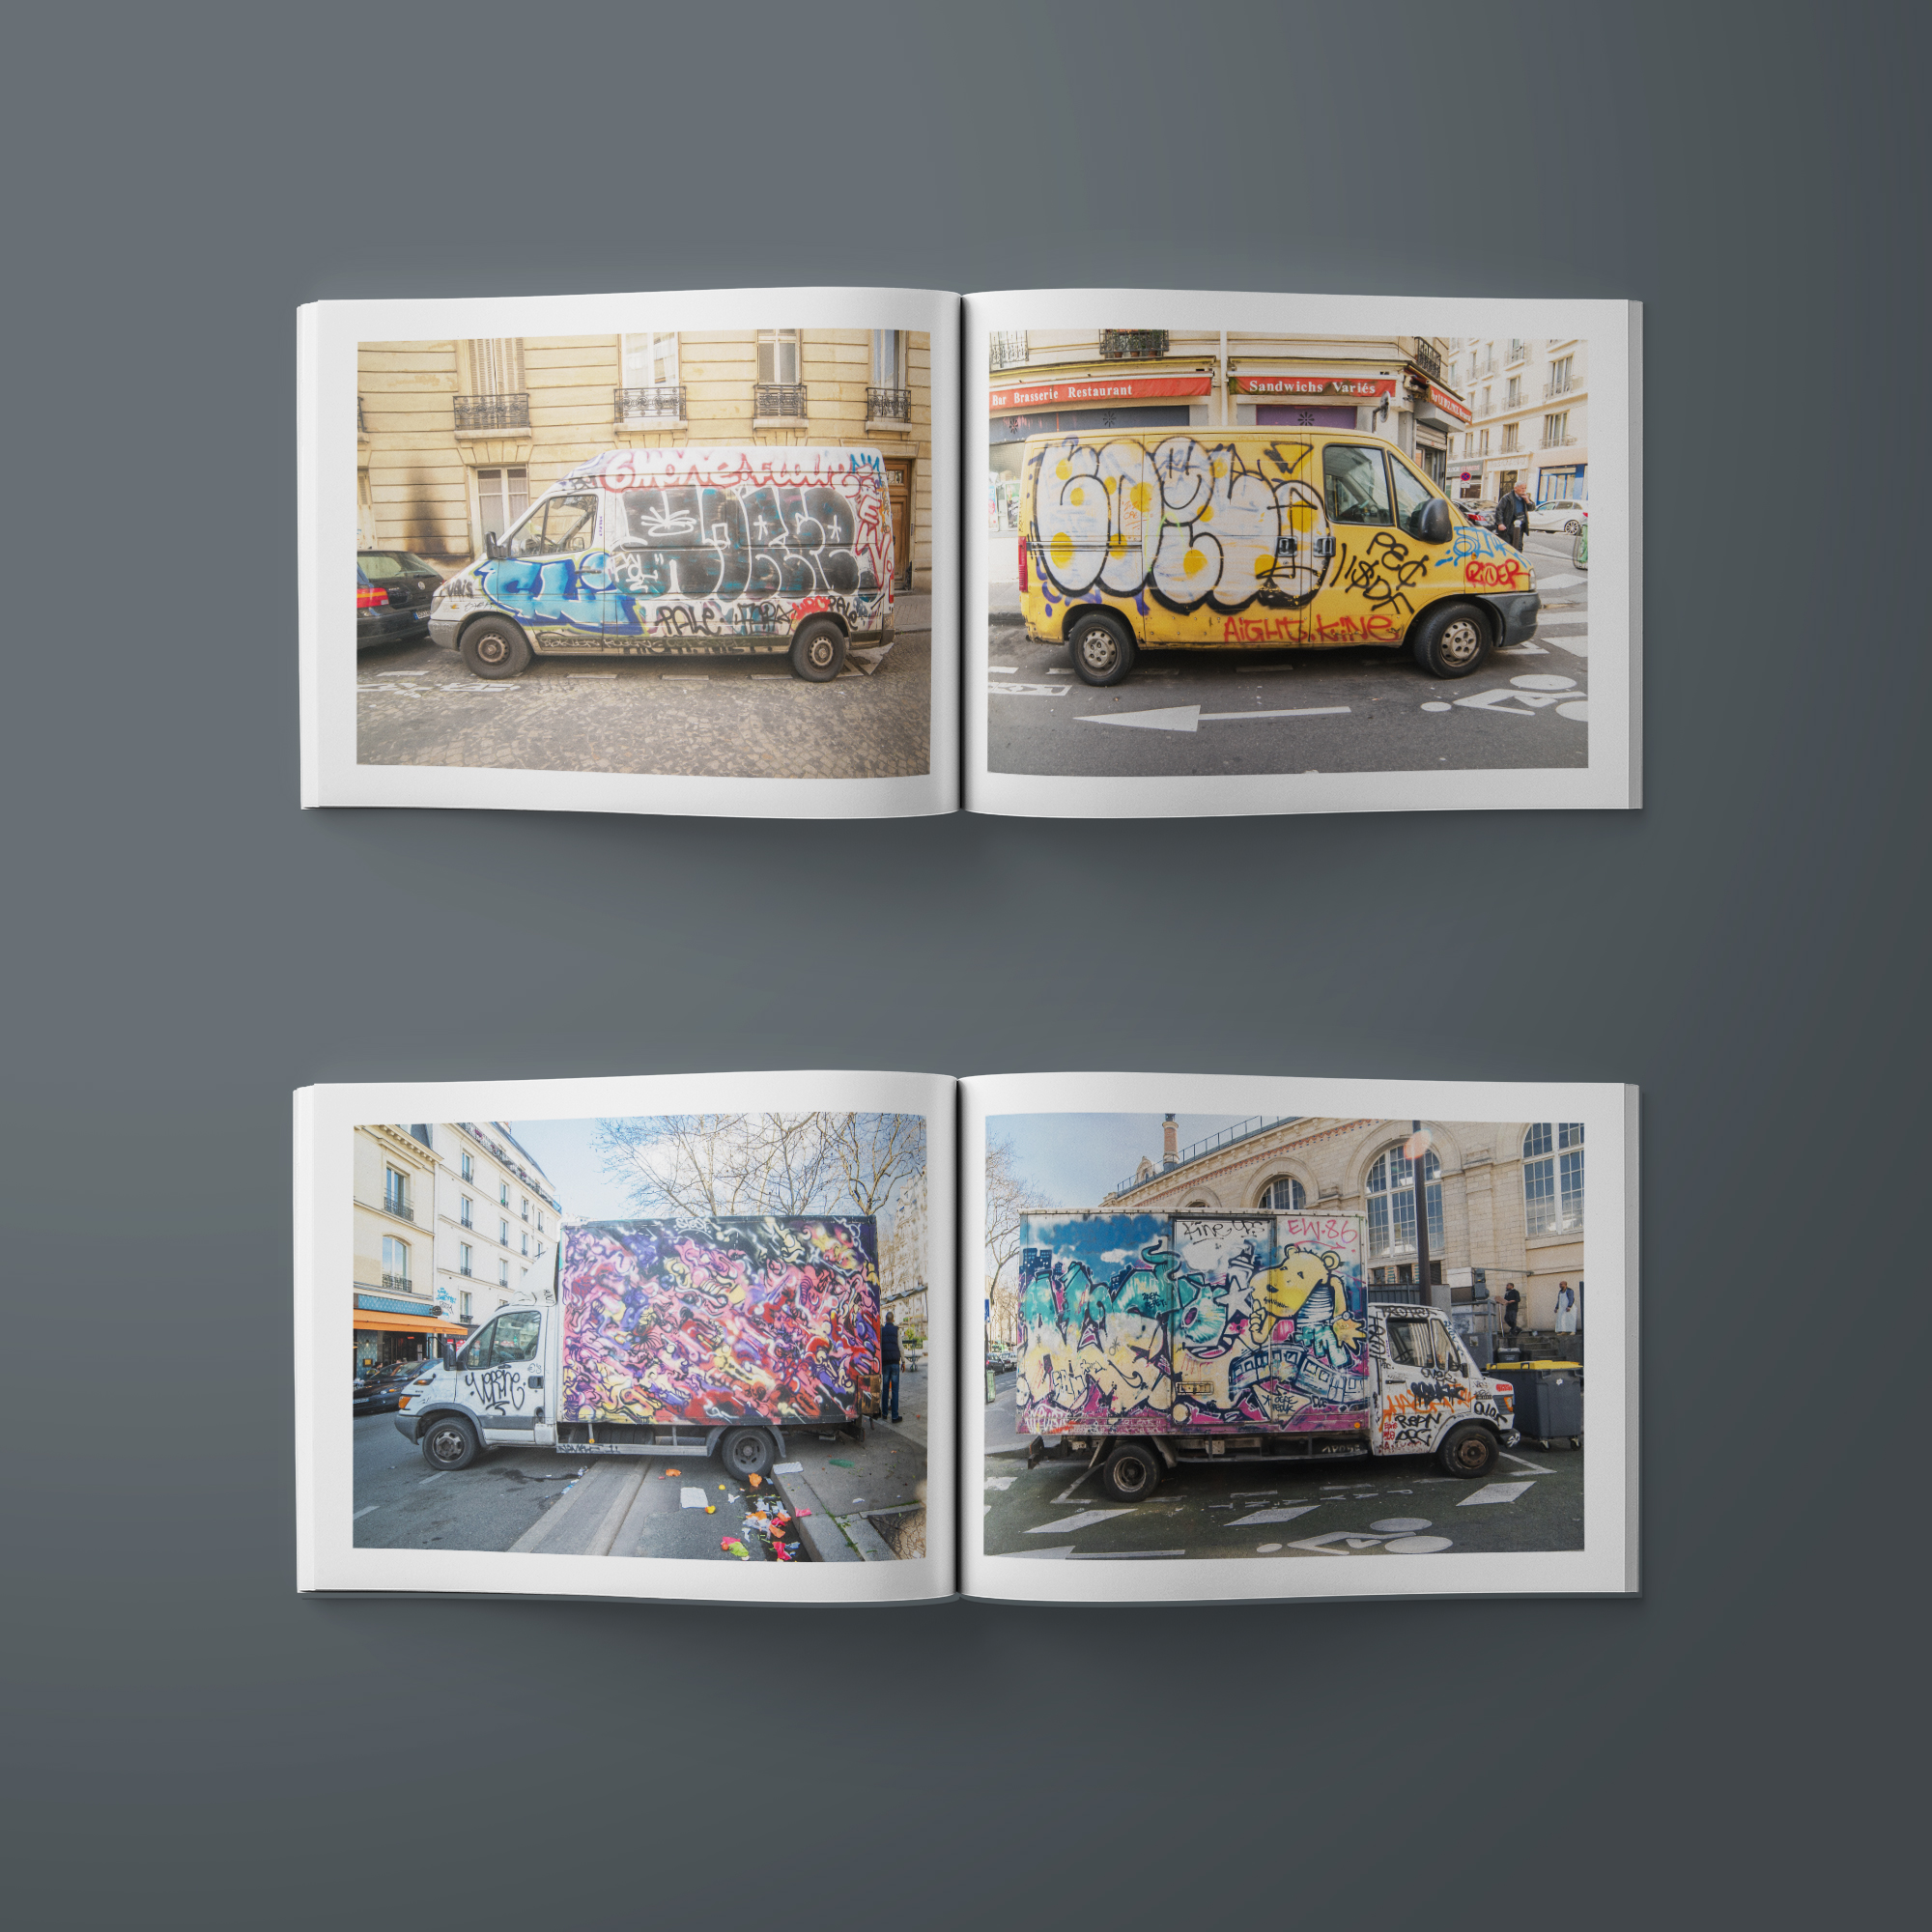 TRUCK_GRAFFICH_GRAFFITI_ON_PARISIAN_TRUCKS_BOOK_GOOD_GUY_BORIS_COVER_B